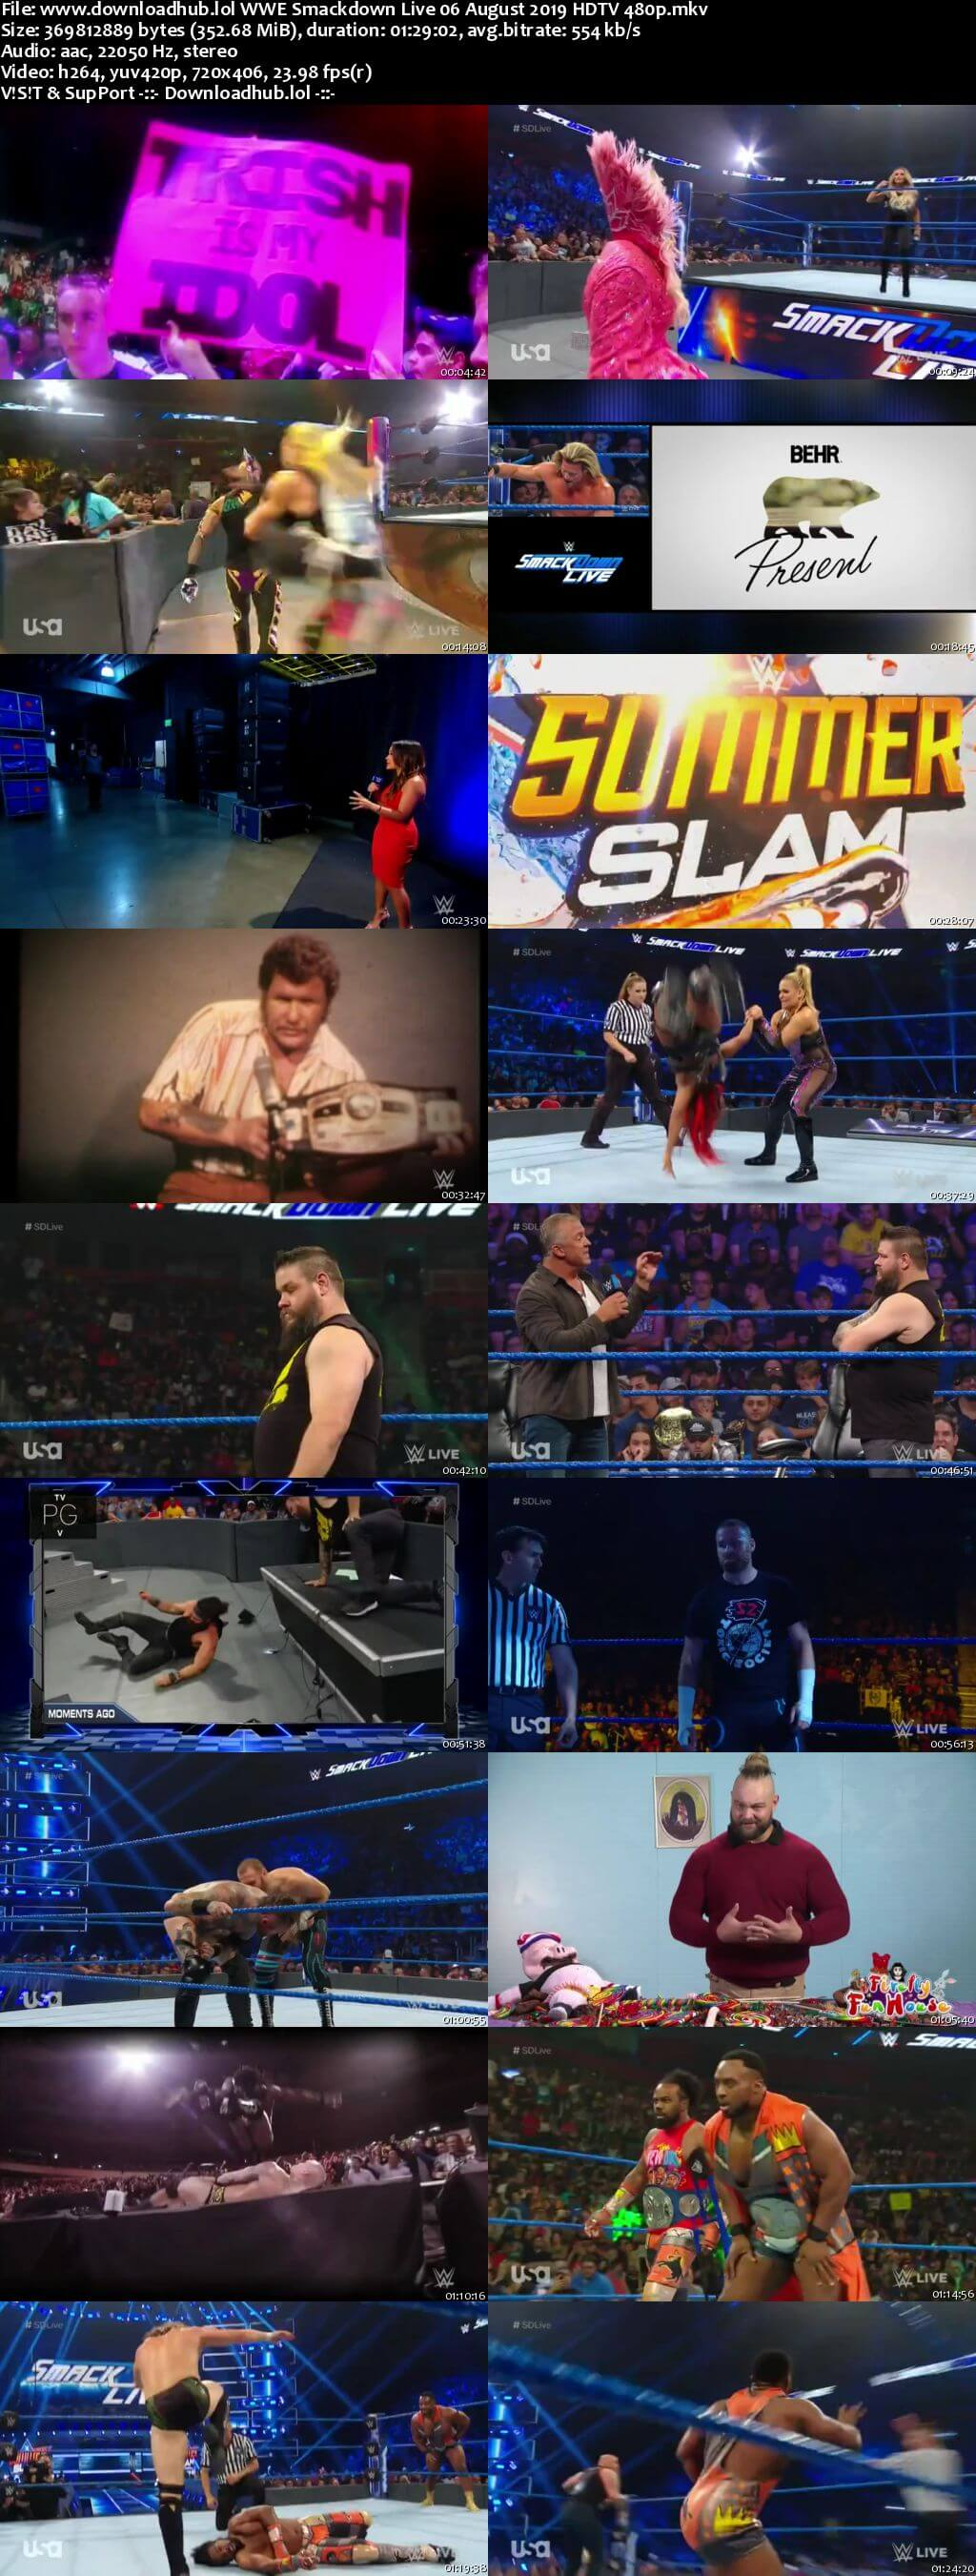 WWE Smackdown Live 6th August 2019 300MB HDTV 480p